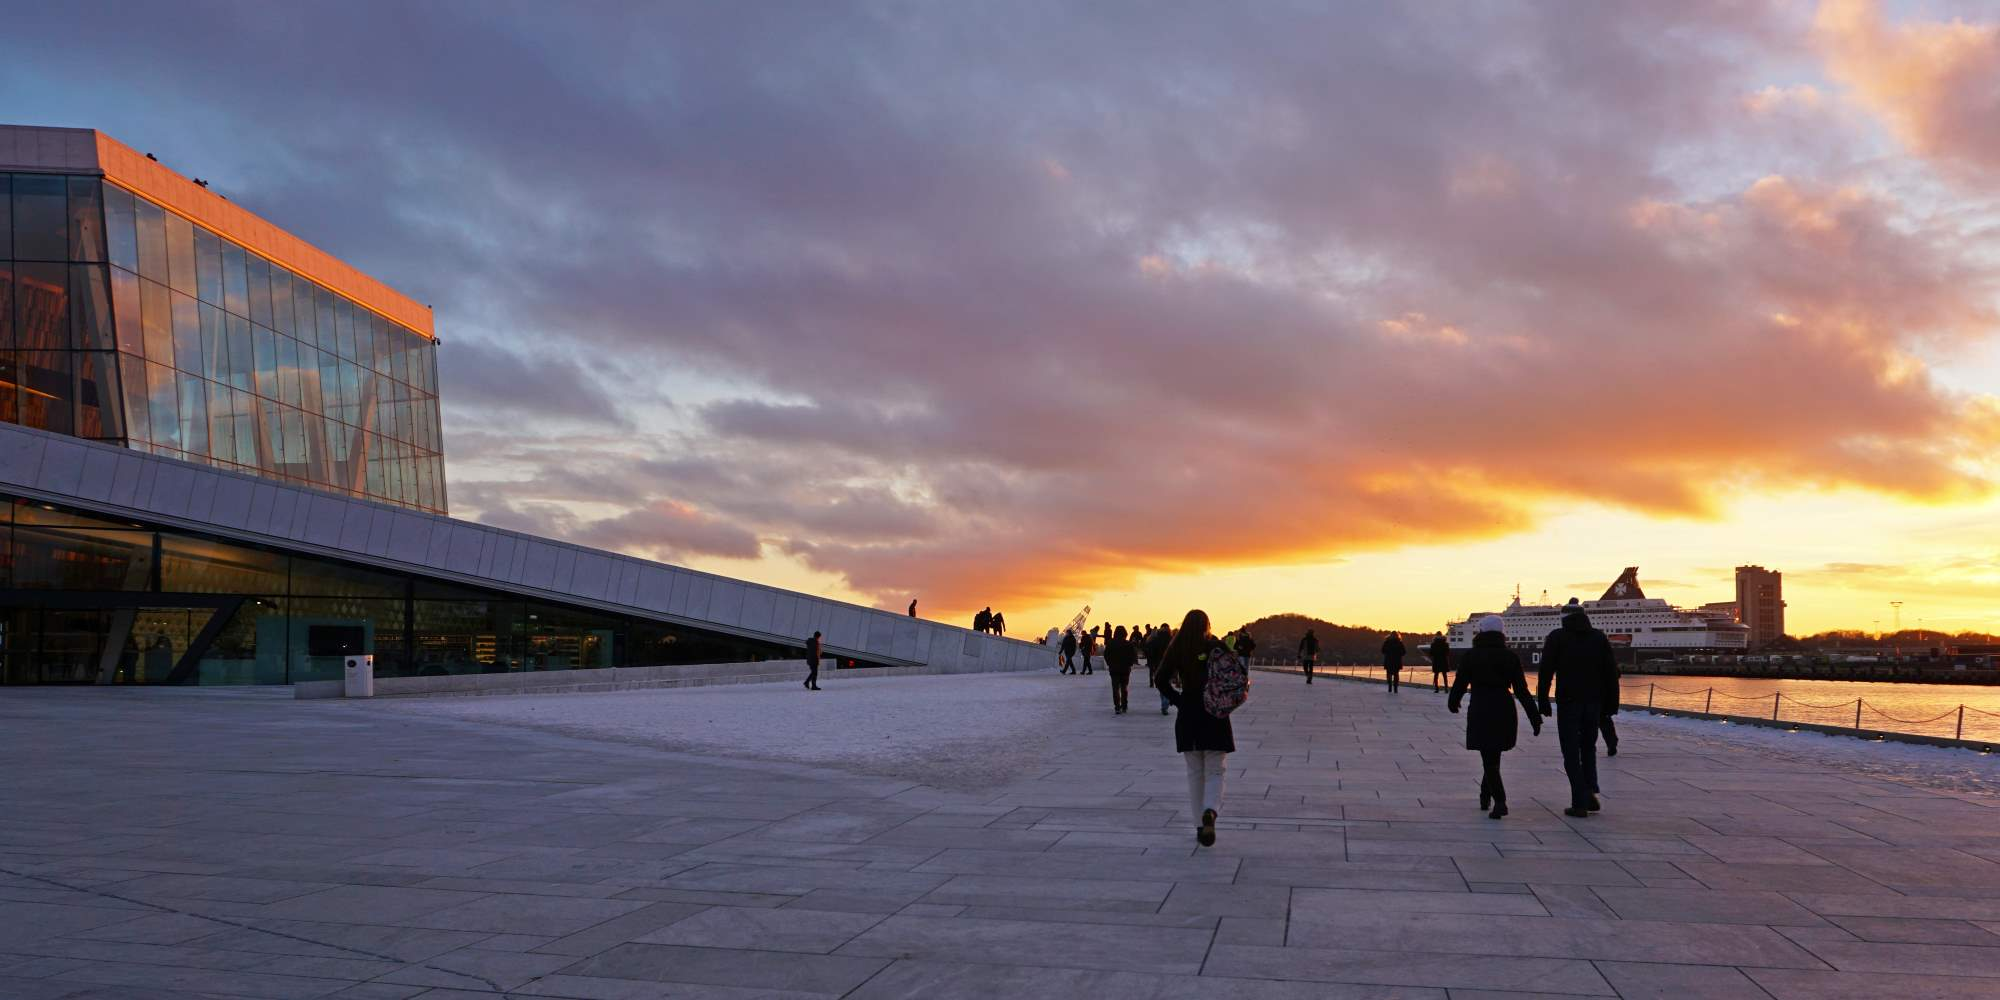 Winter sunset at the Oslo Opera House